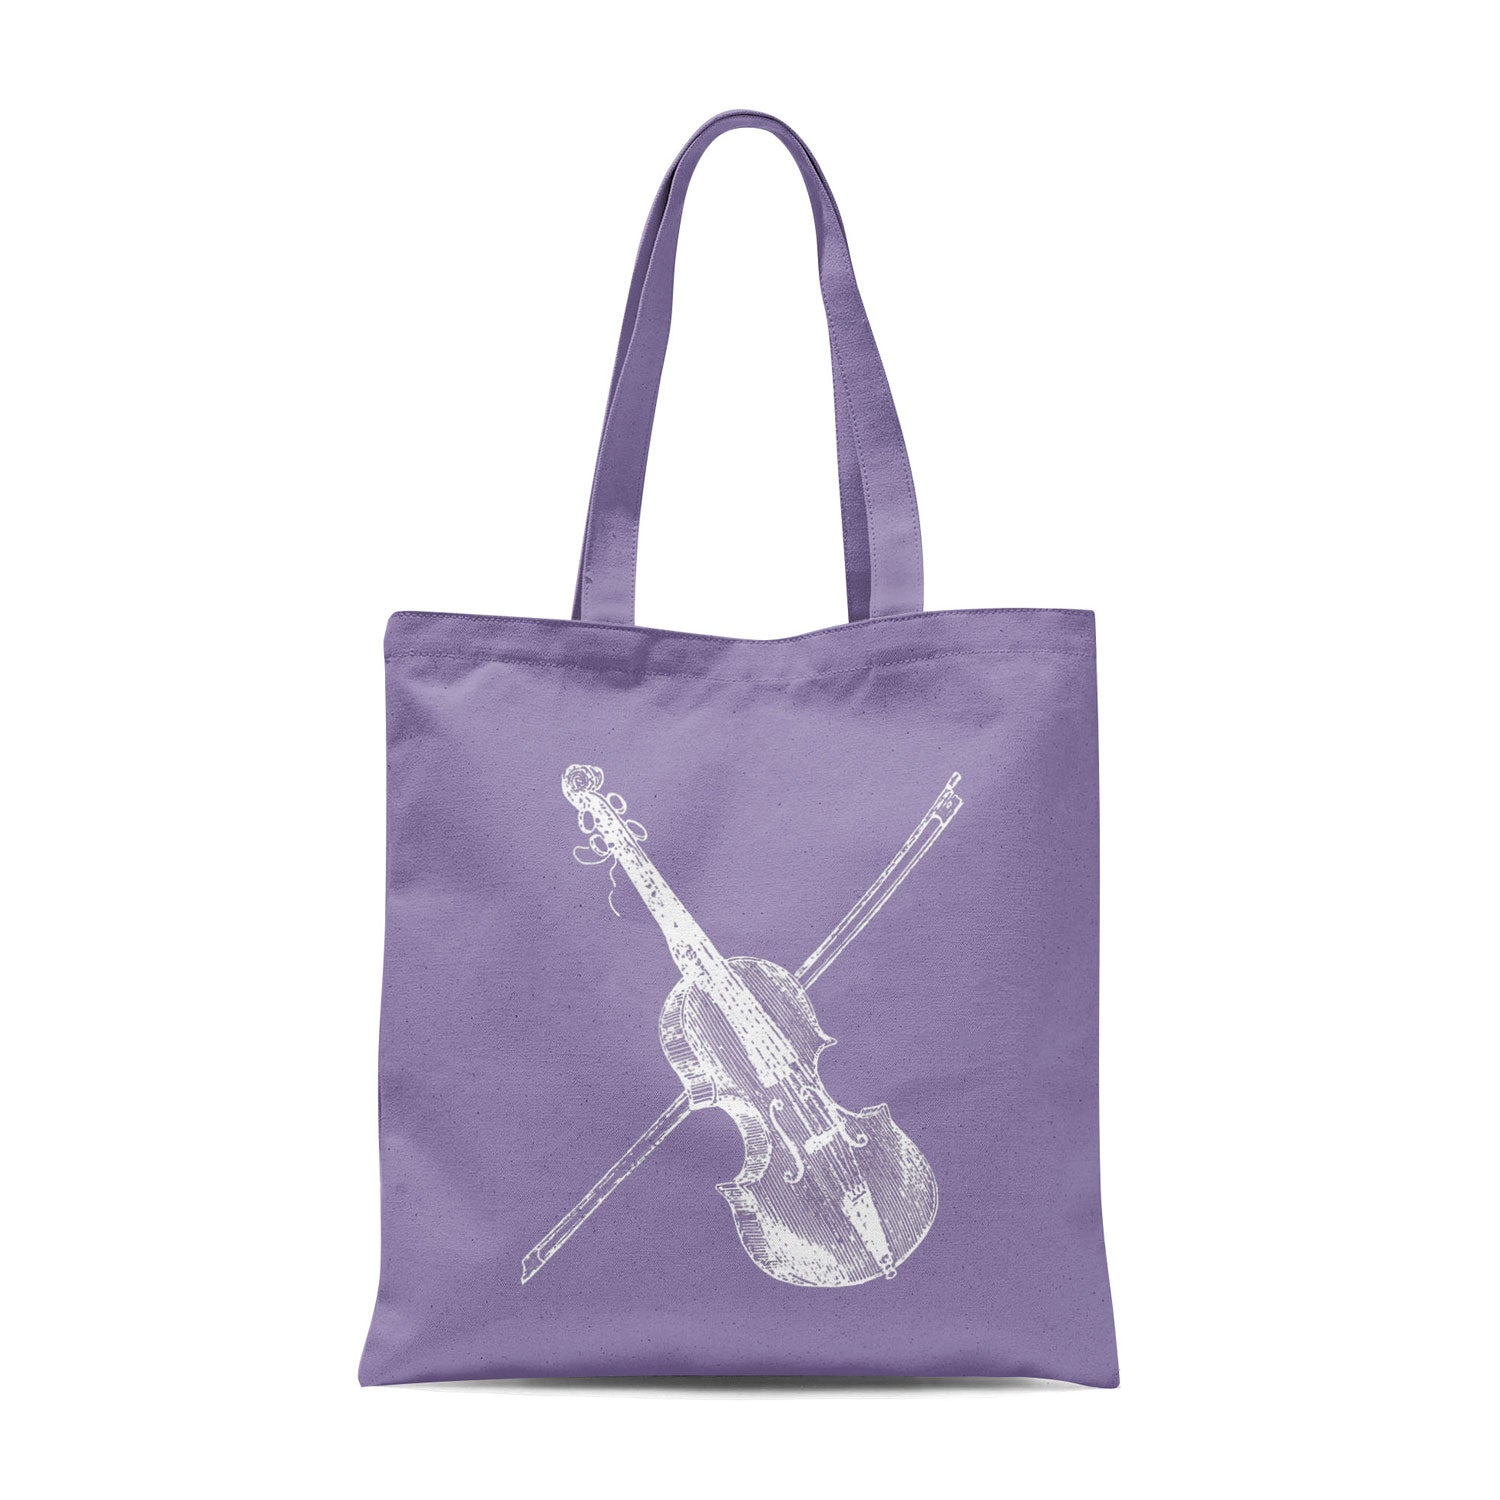 lavender tote bag with white violin illustration